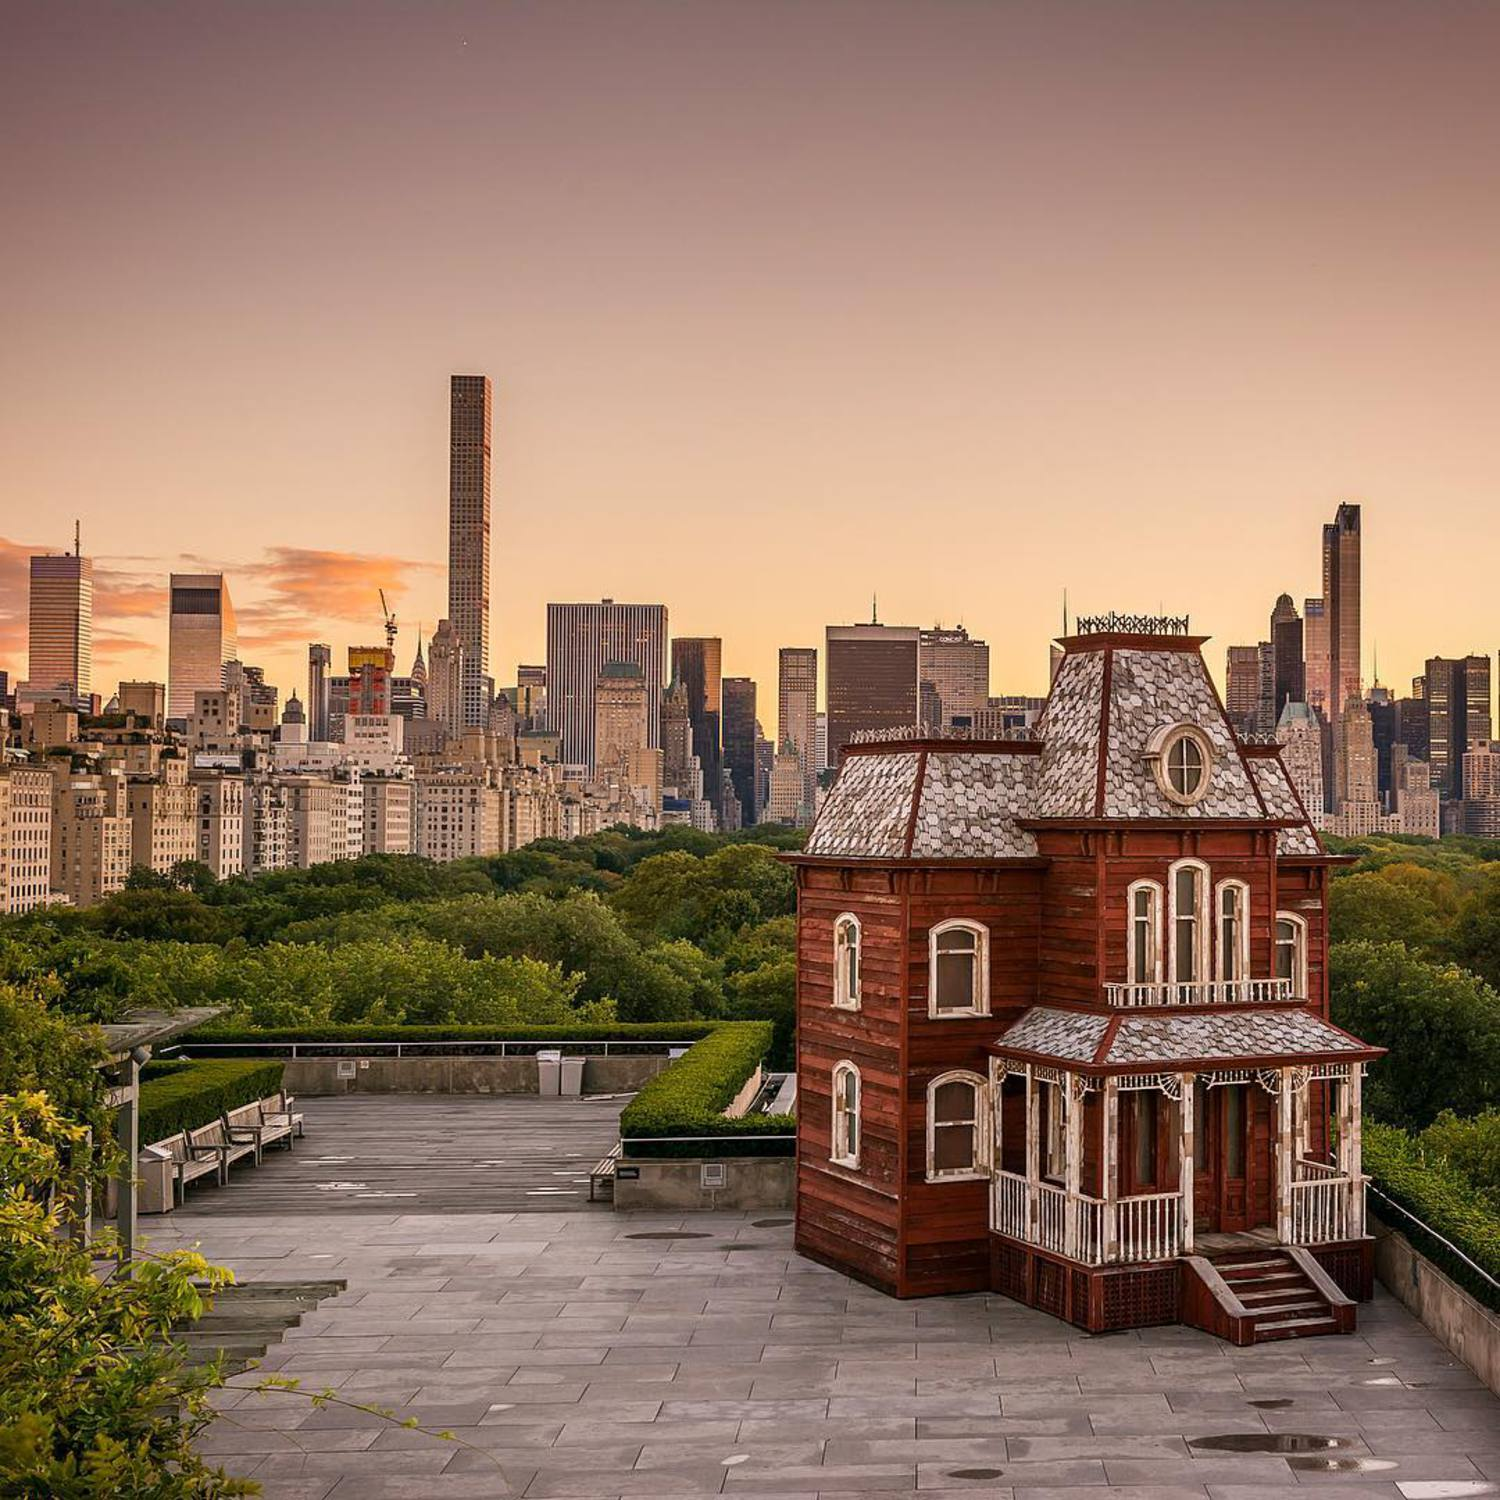 """Cornelia Parker - Transitional Object (PsychoBarn) at The Roof Garden of the Met - The exhibit features a large-scale sculpture by acclaimed British artist Cornelia Parker, inspired by the paintings of Edward Hopper and by two emblems of American architecture—the classic red barn and the Bates family's sinister mansion from Alfred Hitchcock's 1960 film """"Psycho."""" On display until Halloween day ✰ #NYC #NY #newyorkcity #newyork #new_york #manhattan #wildnewyork #EmpireStateOfMind #topnewyorkphoto #thisisnewyorkcity #nycprimeshot #made_in_ny #ig_nycity #igersofnyc #gf_nyc #icapture_nyc #instagramnyc #ILoveNY #newyorker #newyorknewyork #igersusa #newyork_instagram#supremenewyork #ig_northamerica #ig_unitedstates #seeyourcity #met #ic_architecture #rsa_streetview #buildingstyles_gf"""